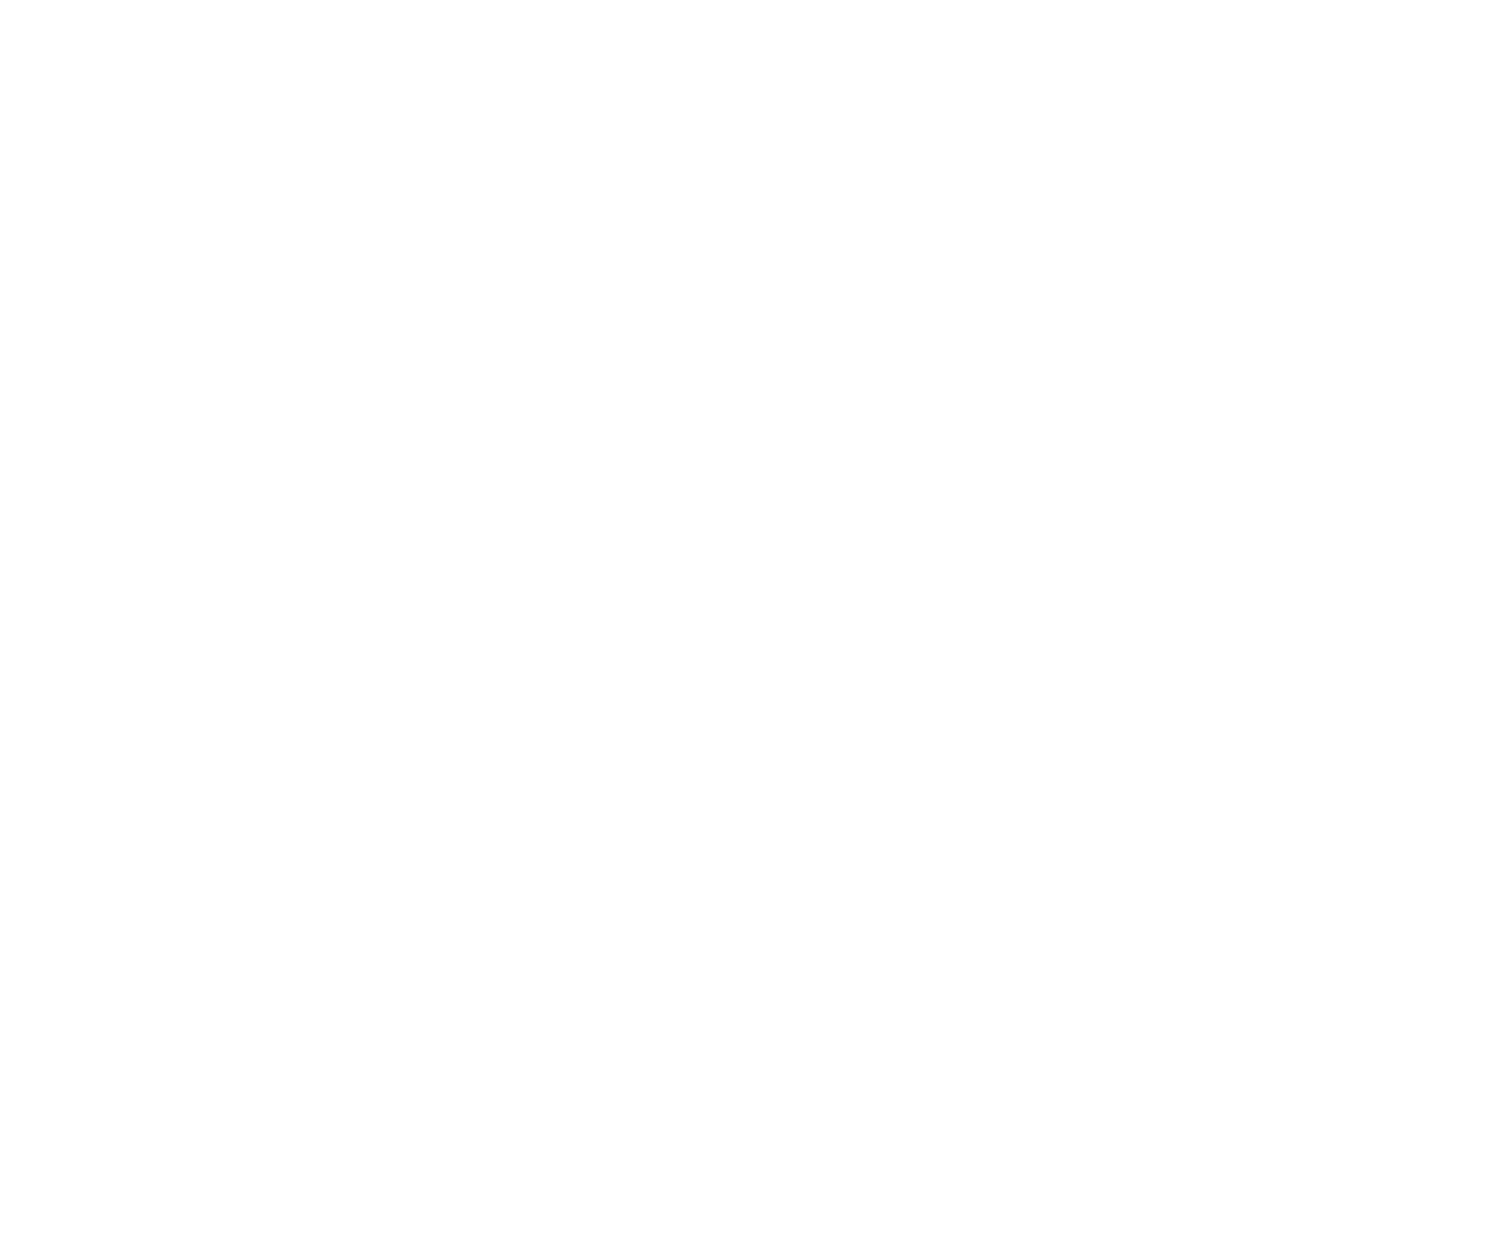 Melissa McElrath Photography